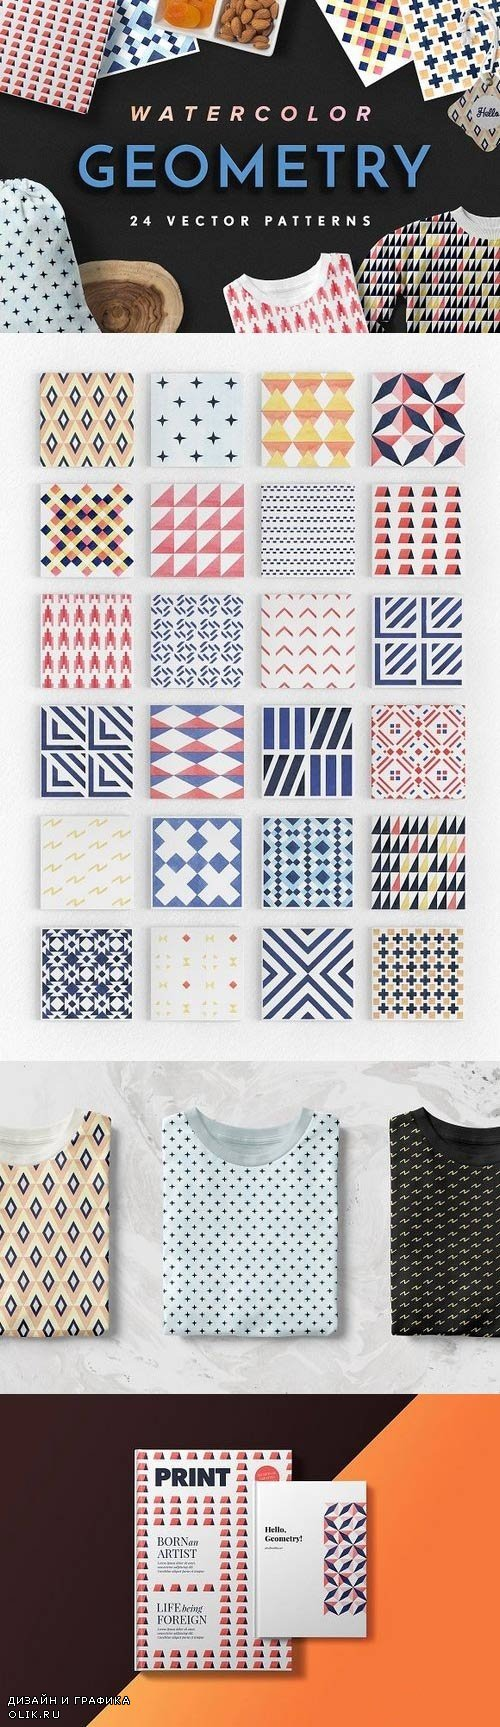 Geometry Watercolor Vector Patterns 742128